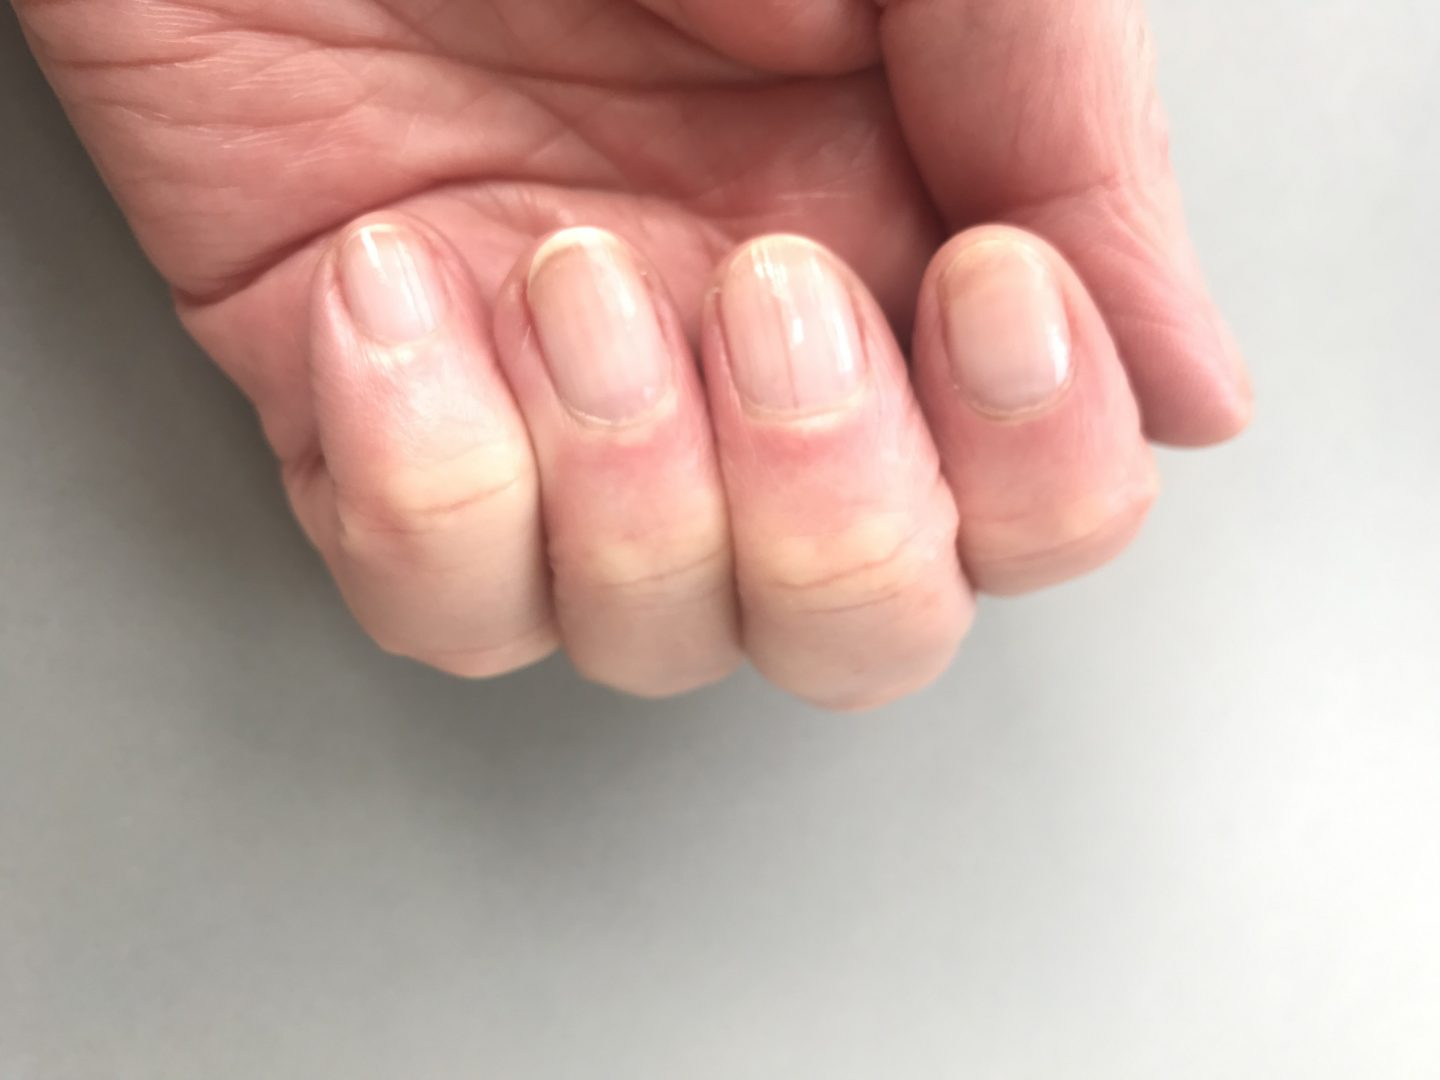 Healthy Nails with no polish after a nail detox.